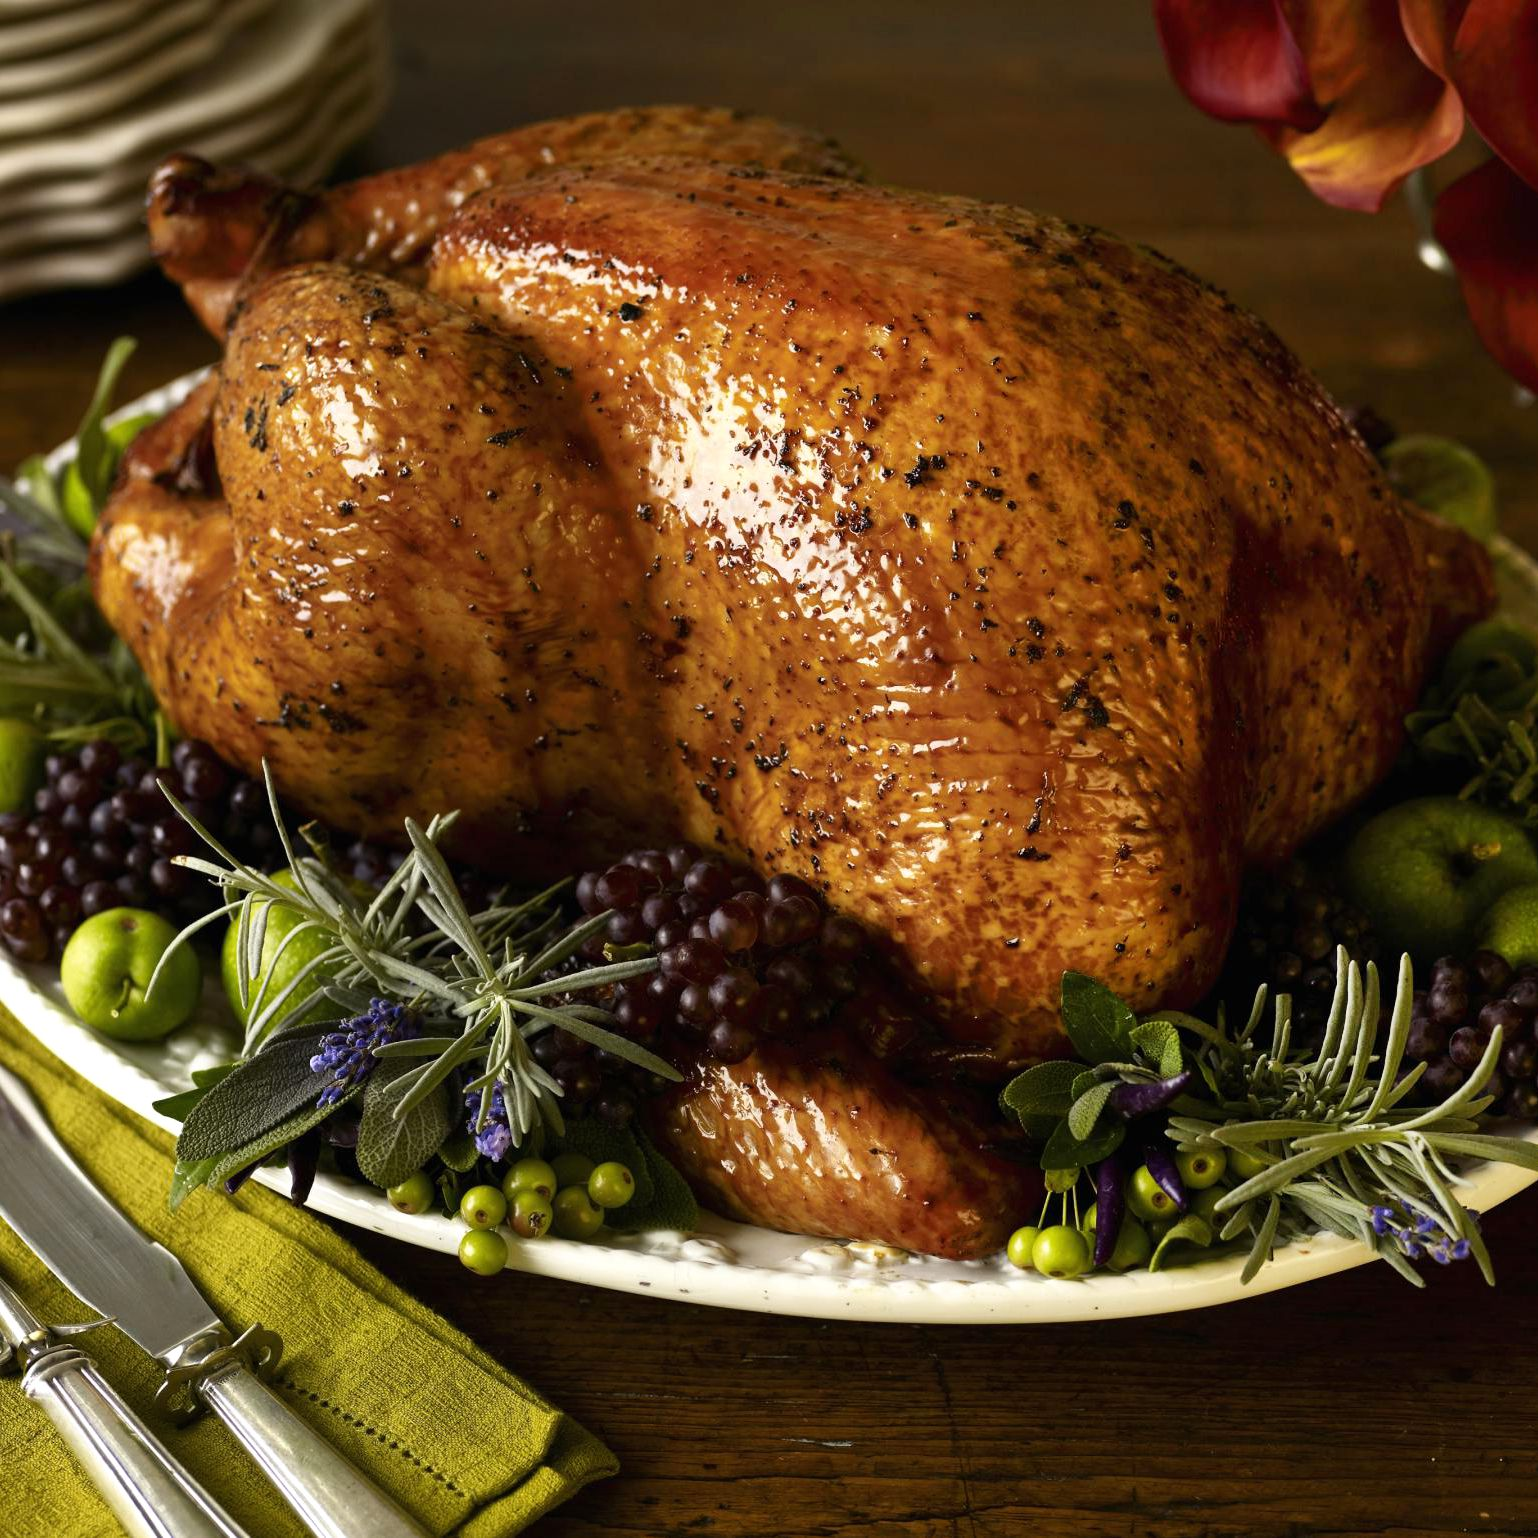 Buying A Turkey That Is Safe For Food Allergies